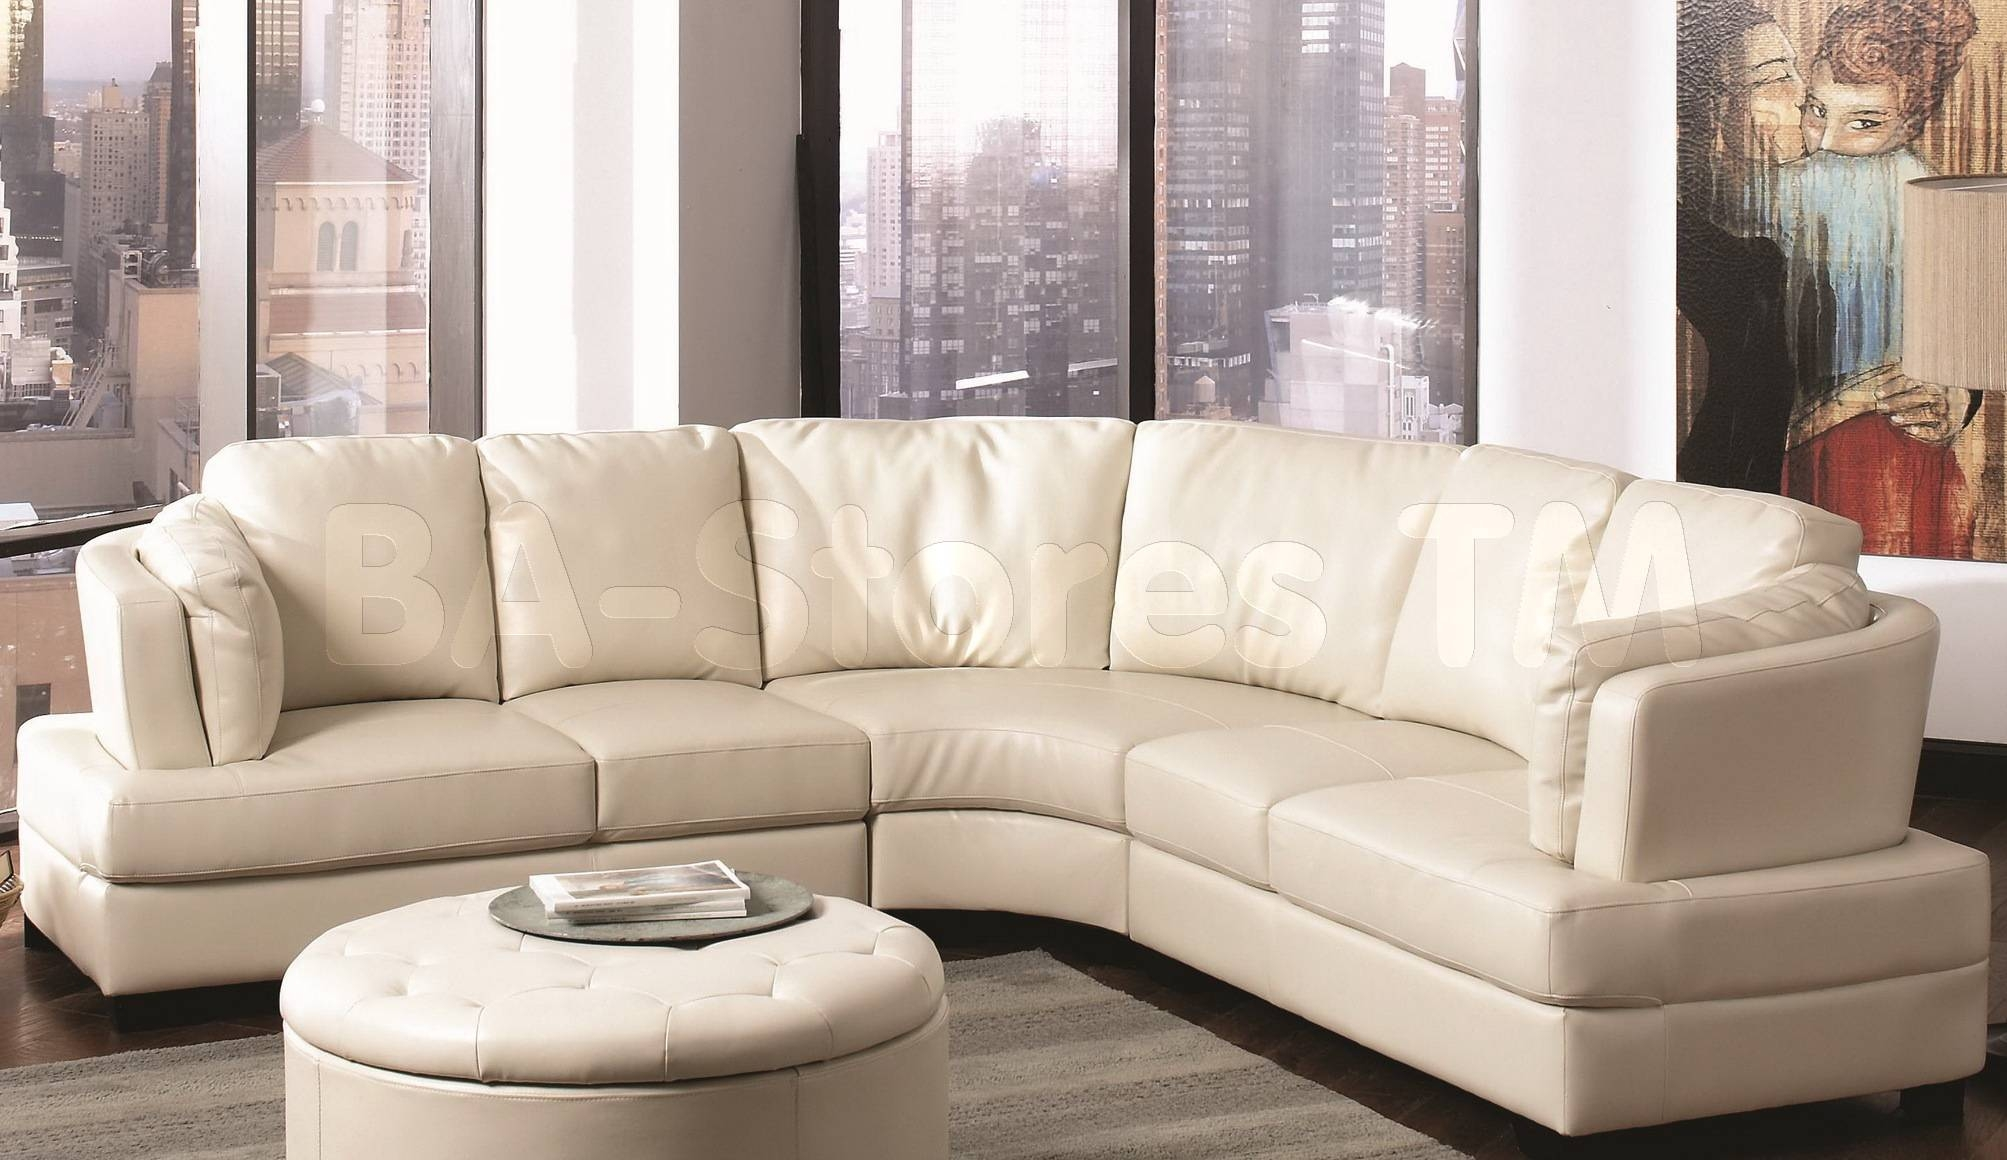 Curved Sectional Sofas At Macys   Tehranmix Decoration For Rochester Sectional Sofas (View 12 of 15)